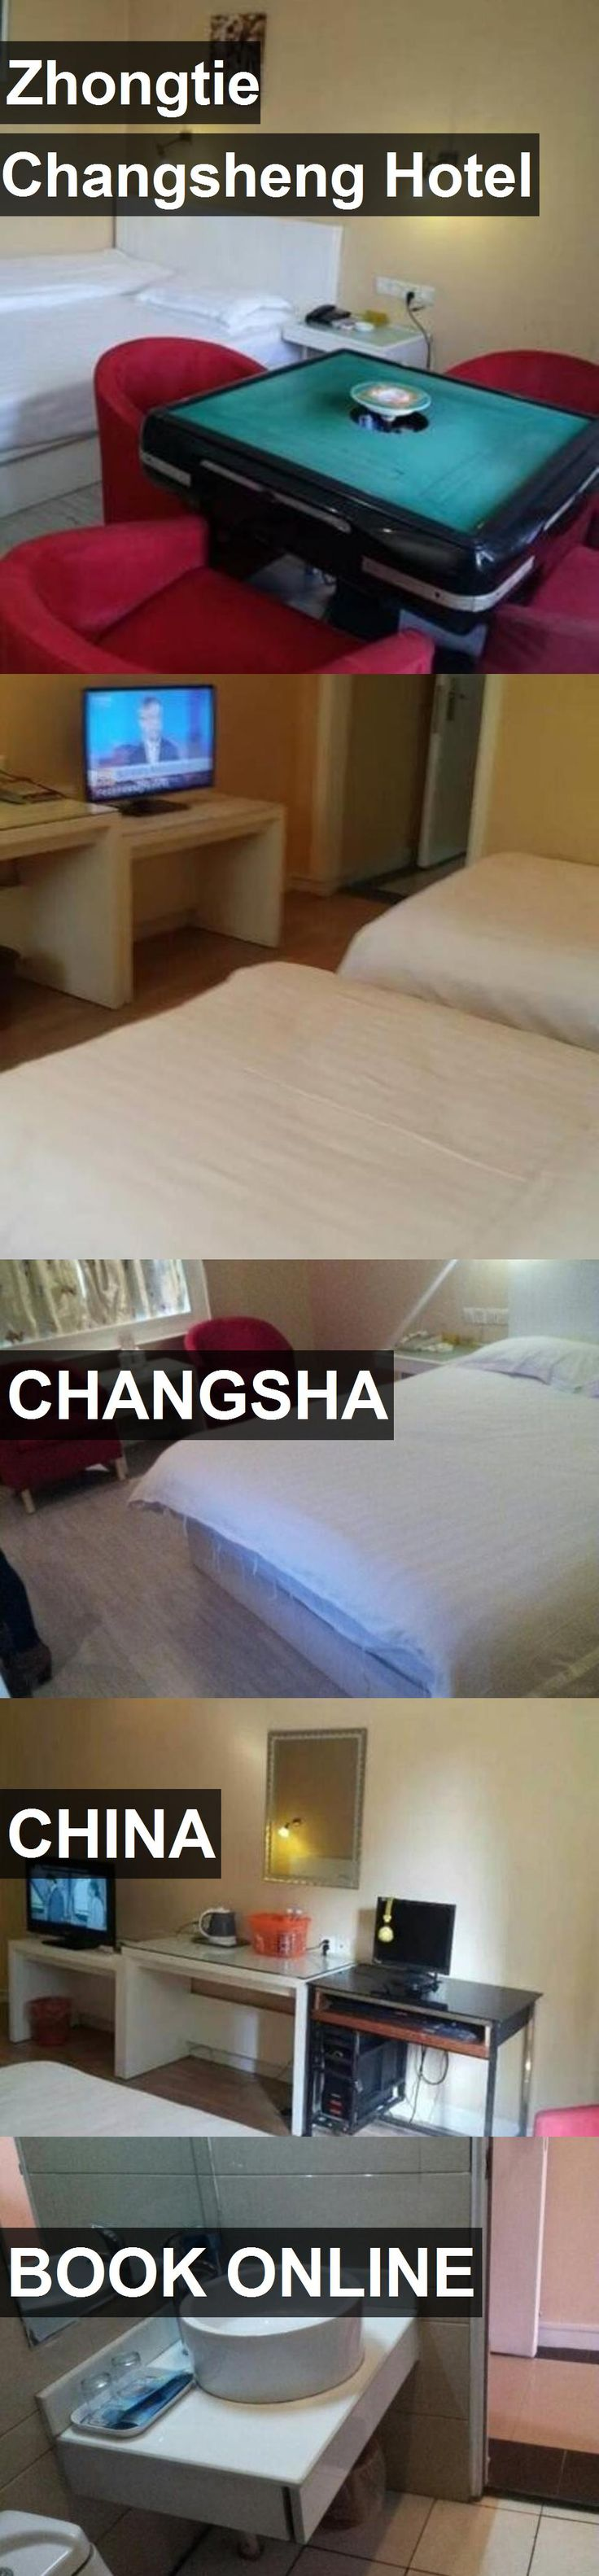 Hotel Zhongtie Changsheng Hotel in Changsha, China. For more information, photos, reviews and best prices please follow the link. #China #Changsha #ZhongtieChangshengHotel #hotel #travel #vacation